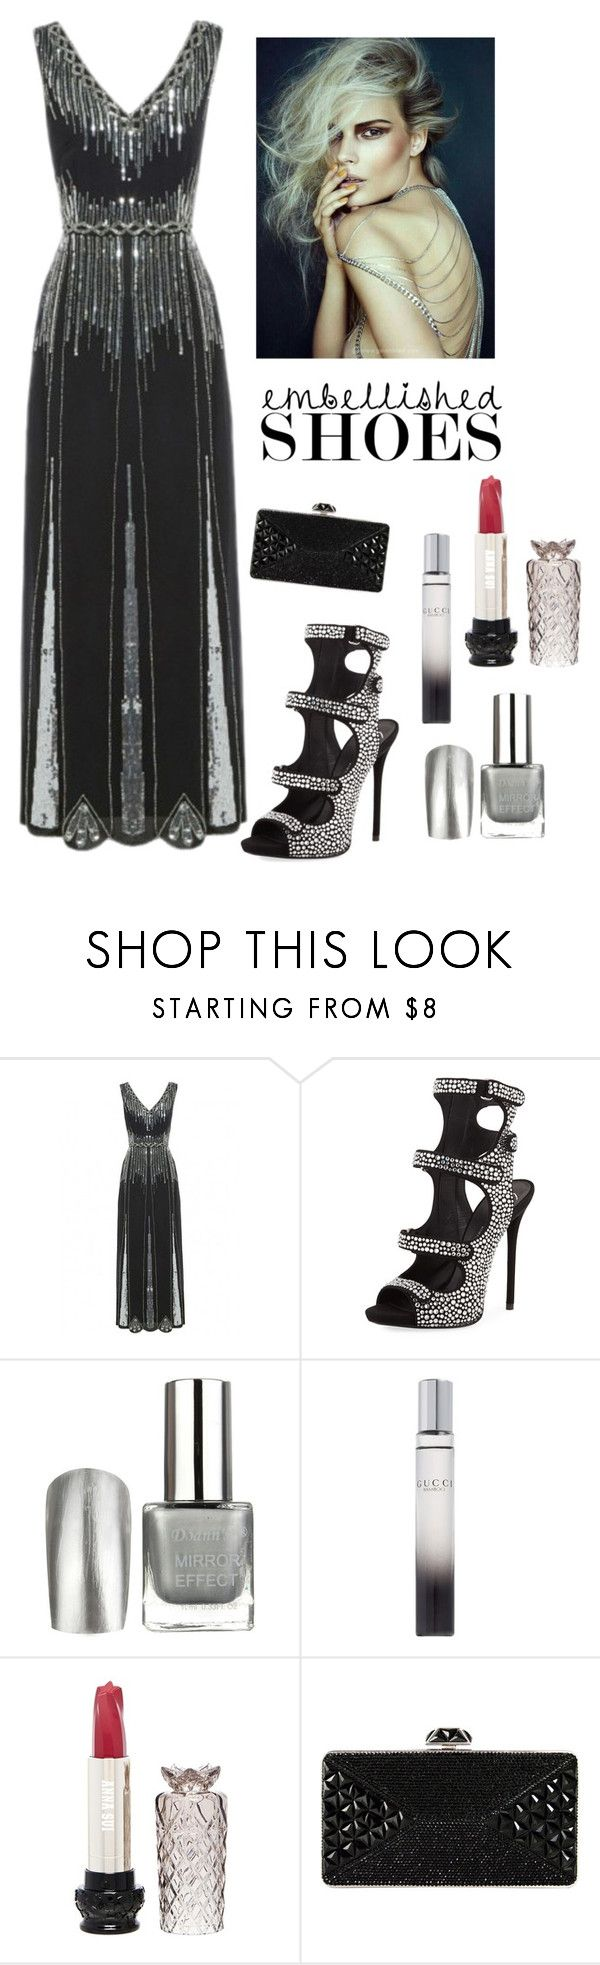 """""""Fabulous Heels"""" by kotnourka ❤ liked on Polyvore featuring Giuseppe Zanotti, Gucci, Anna Sui and Judith Leiber"""